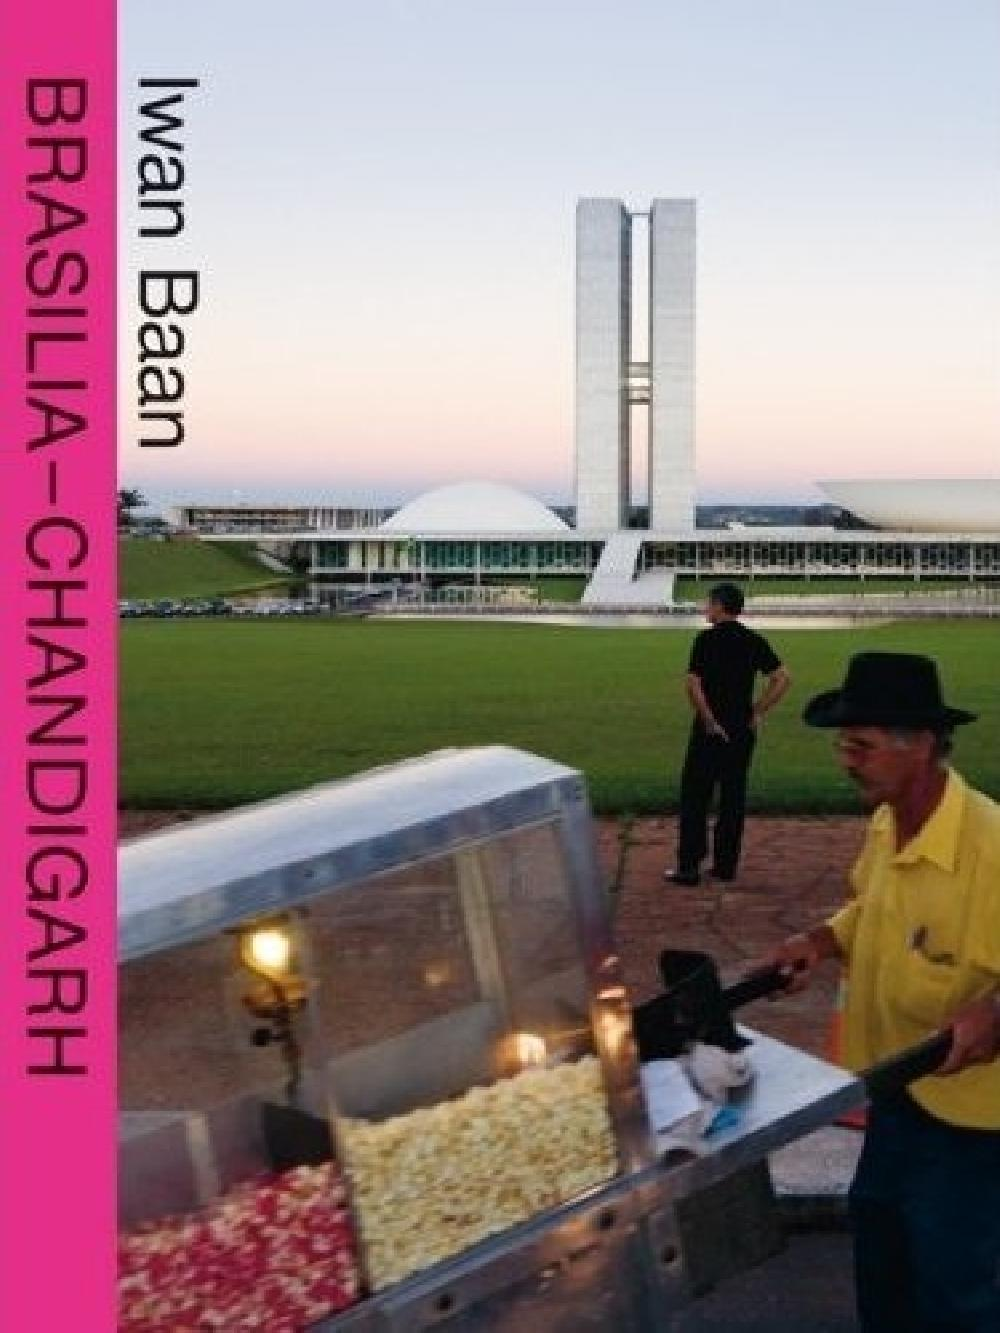 Brasilia Chandigarh Living with Modernity